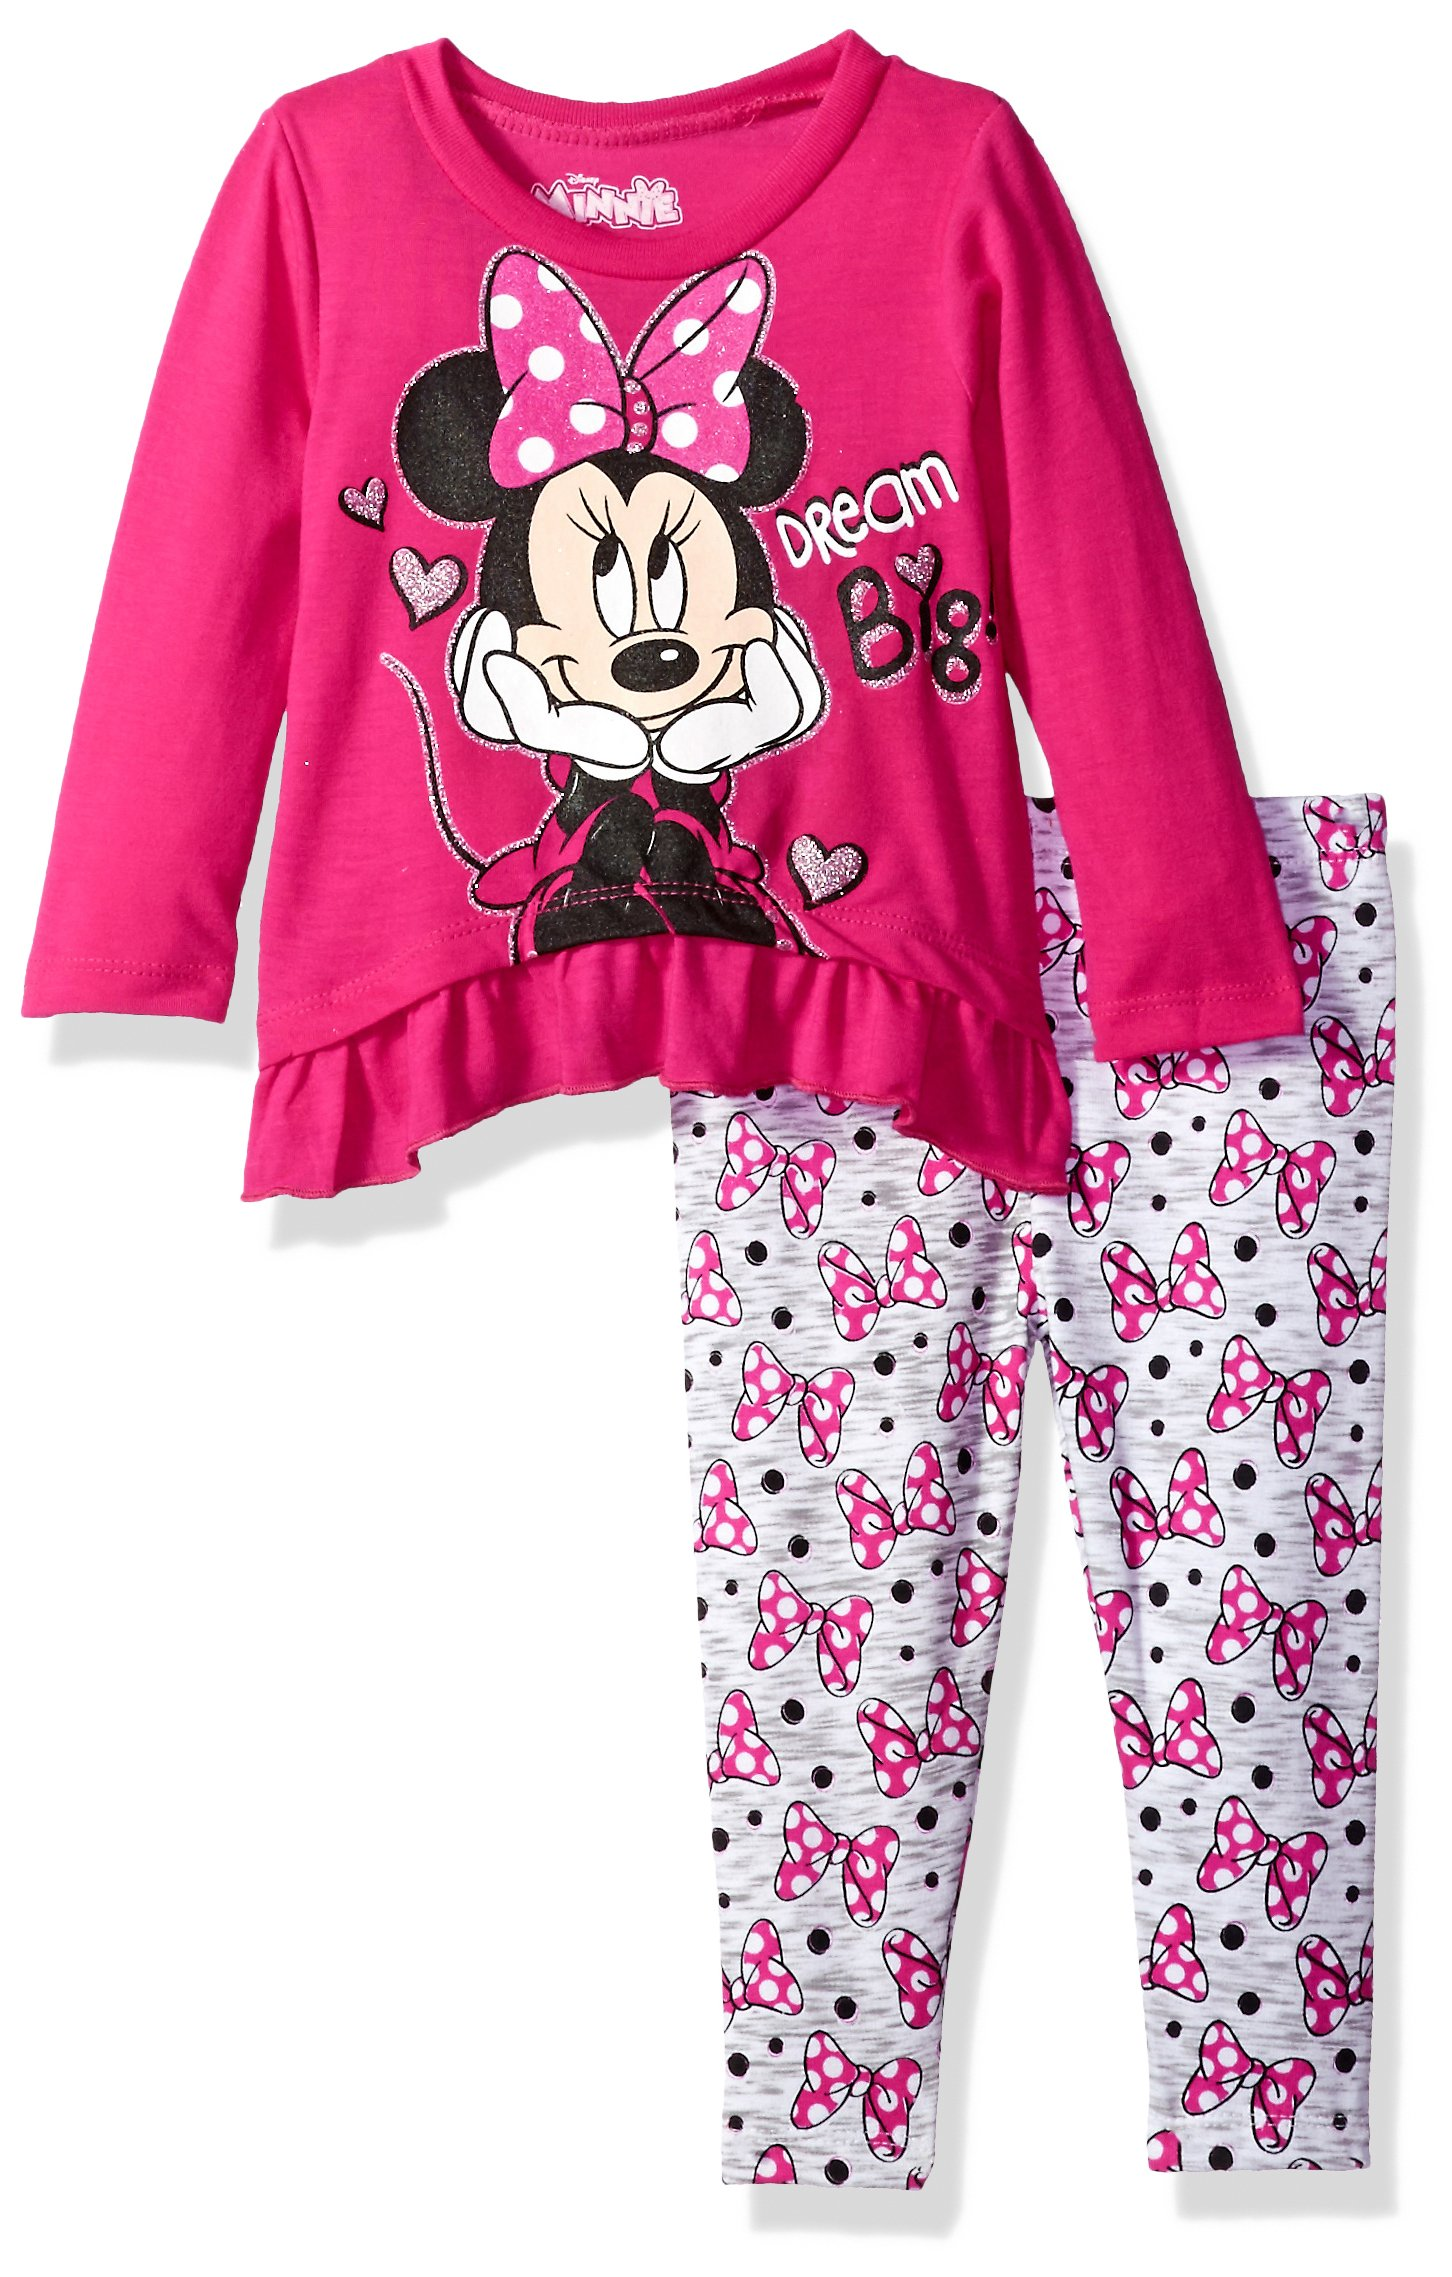 Disney Girls' Minnie Mouse 2-Piece Ruffle Top and Legging Set, Hot Pink/Pink, 18M